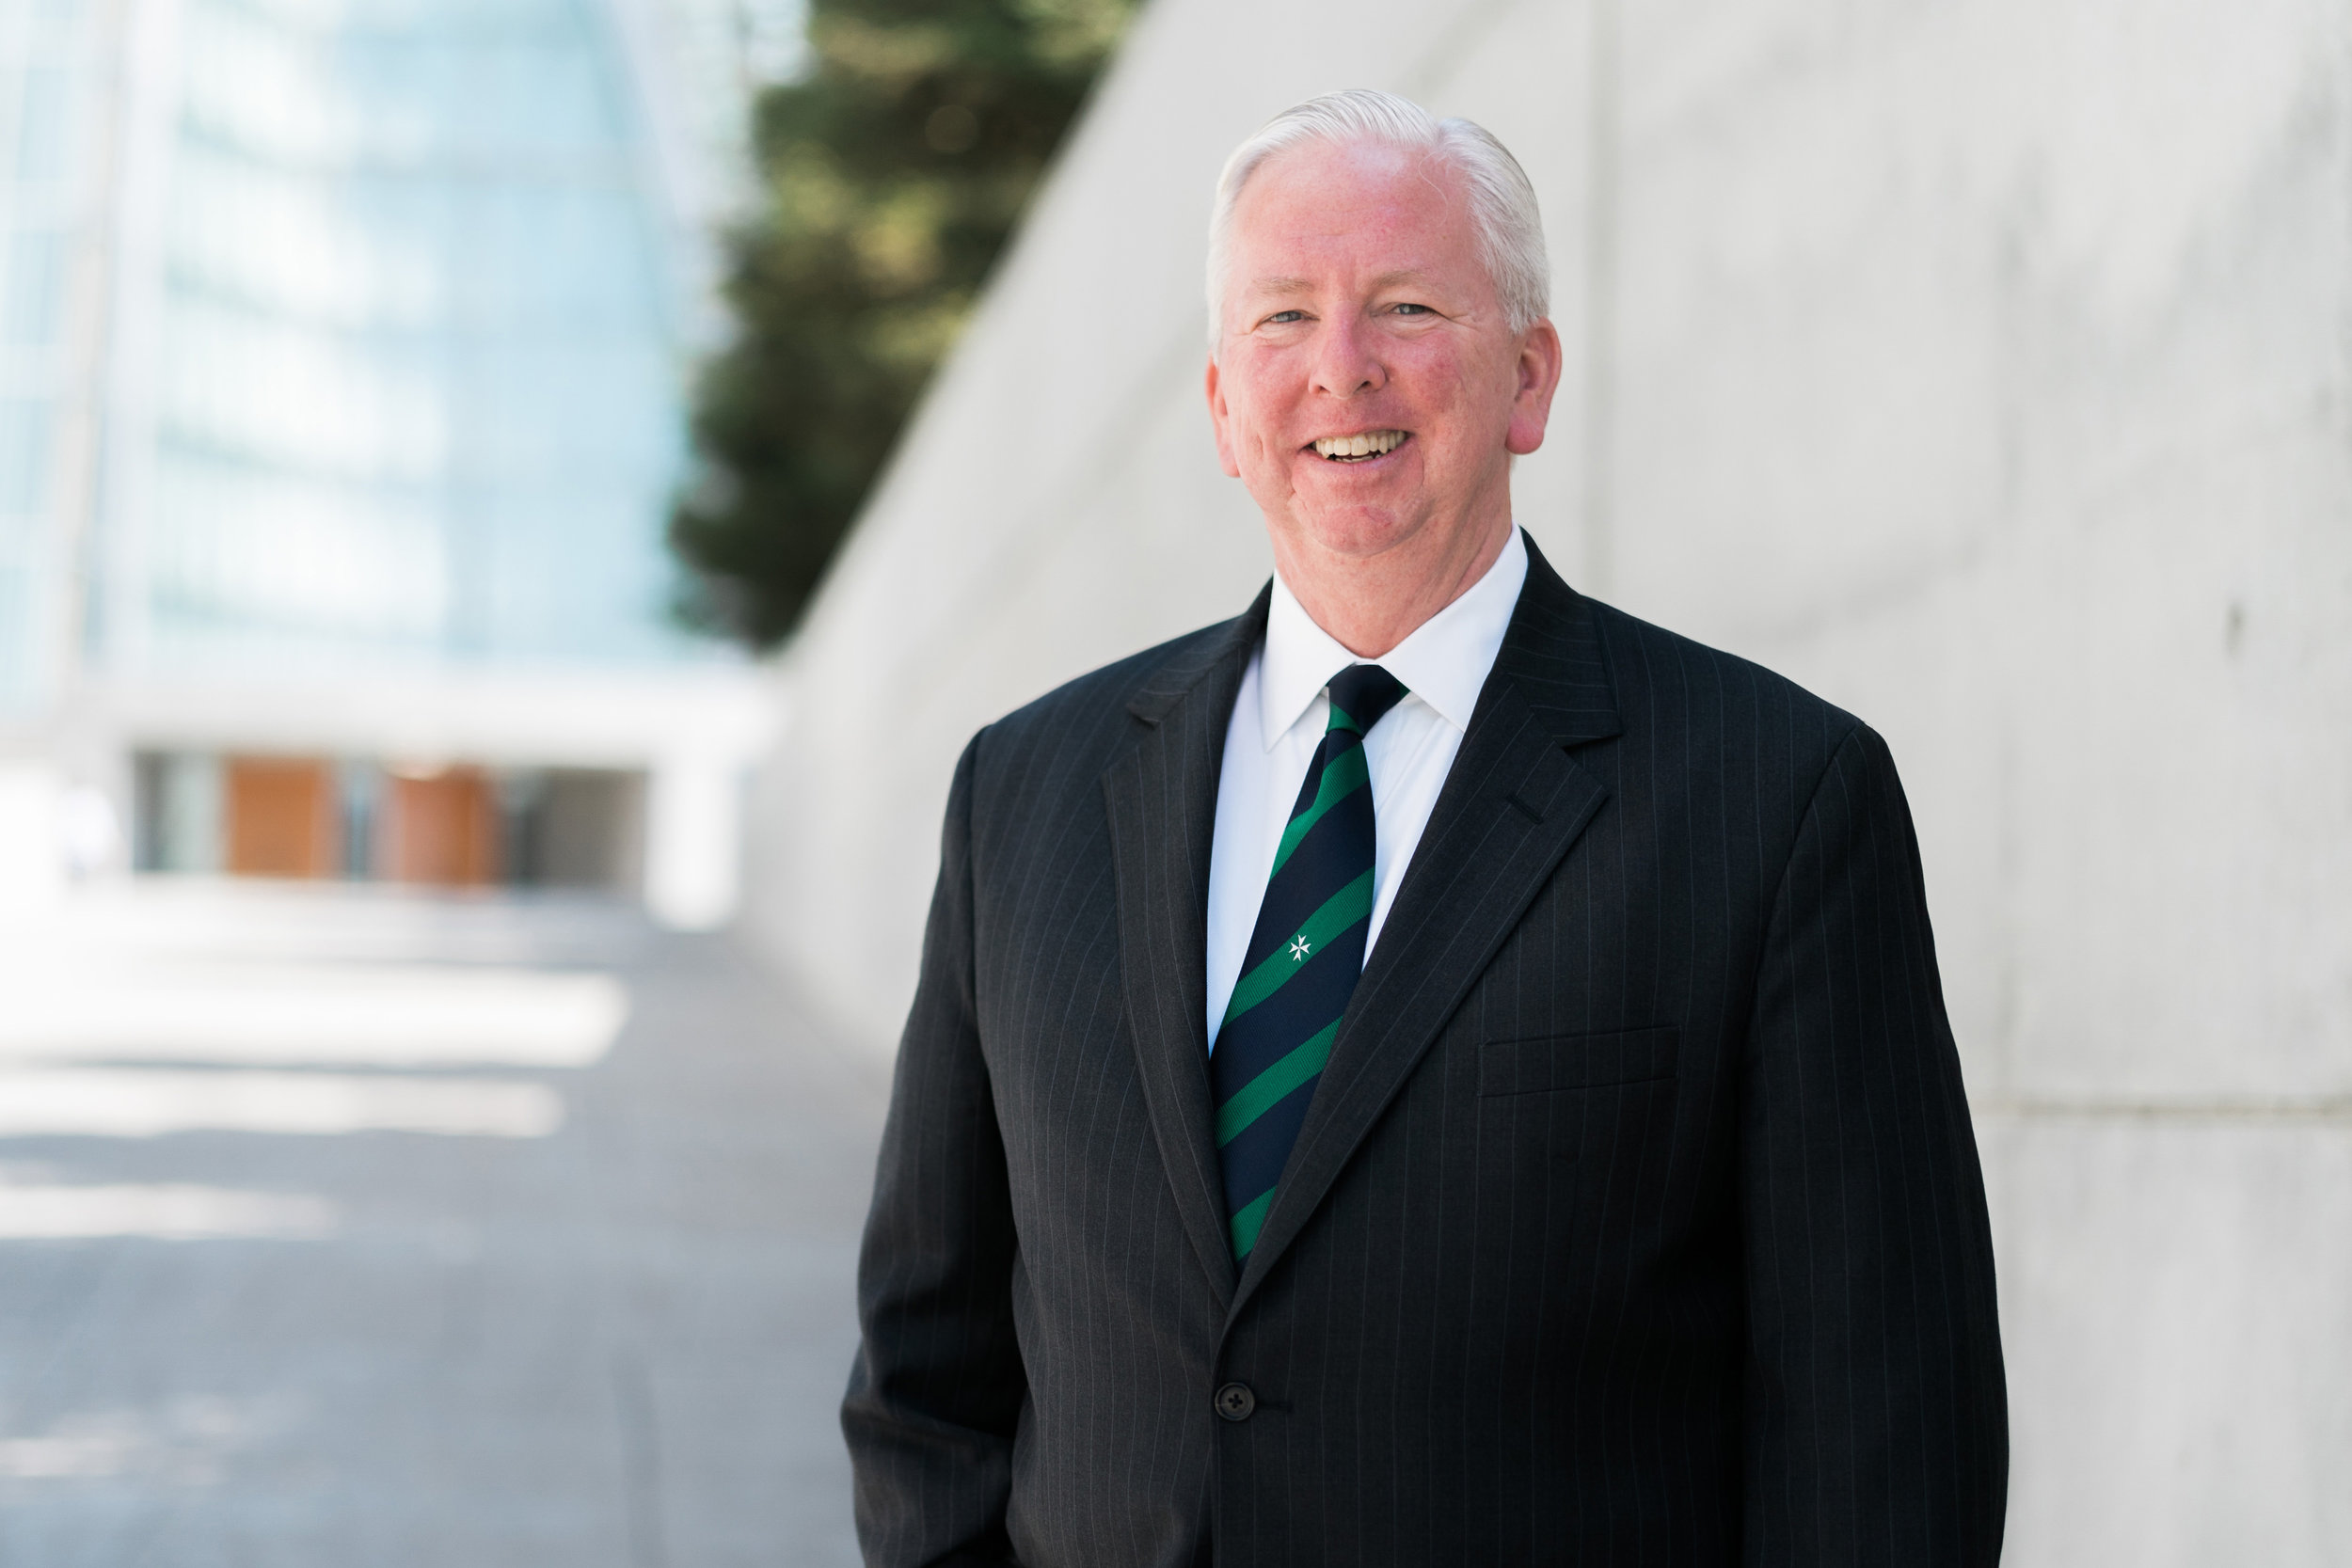 John Christian, Esq, KM (Board Chair) <br><em> Attorney, Executive Director, Real Property Support Corporation for the Archdiocese of San Francisco </em>